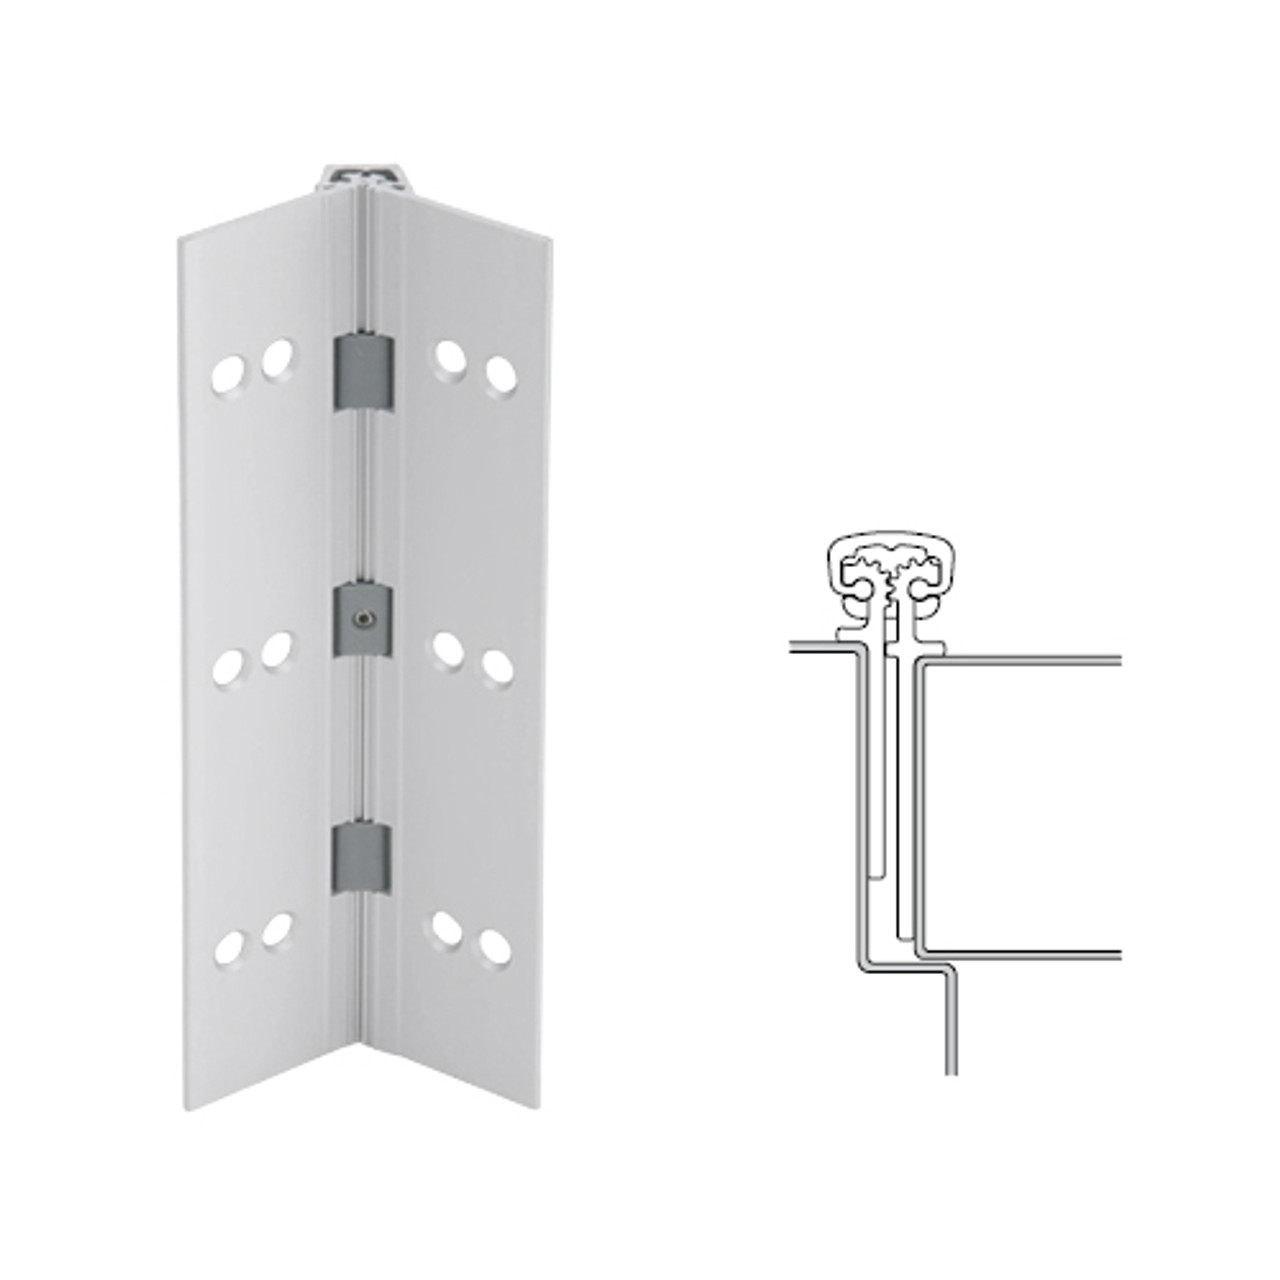 026XY-US28-95-SECWDHM IVES Full Mortise Continuous Geared Hinges with Security Screws - Hex Pin Drive in Satin Aluminum